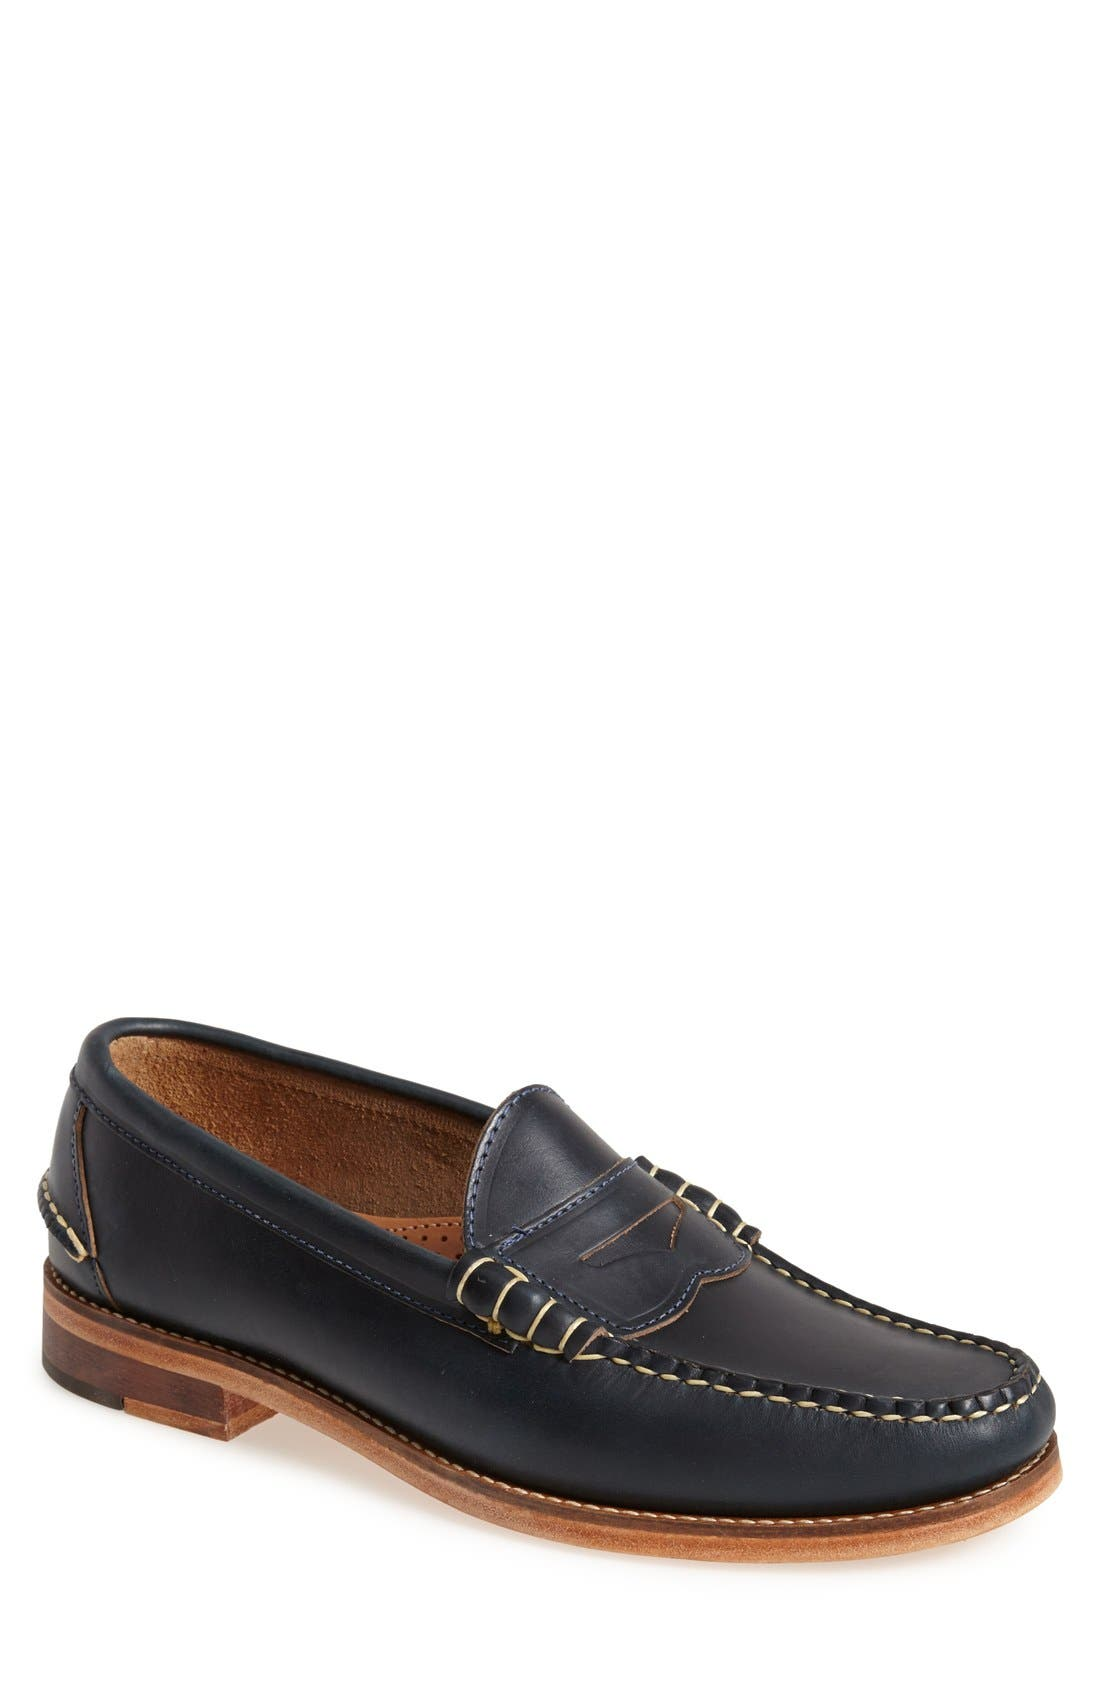 Beefroll Penny Loafer,                             Main thumbnail 1, color,                             Navy